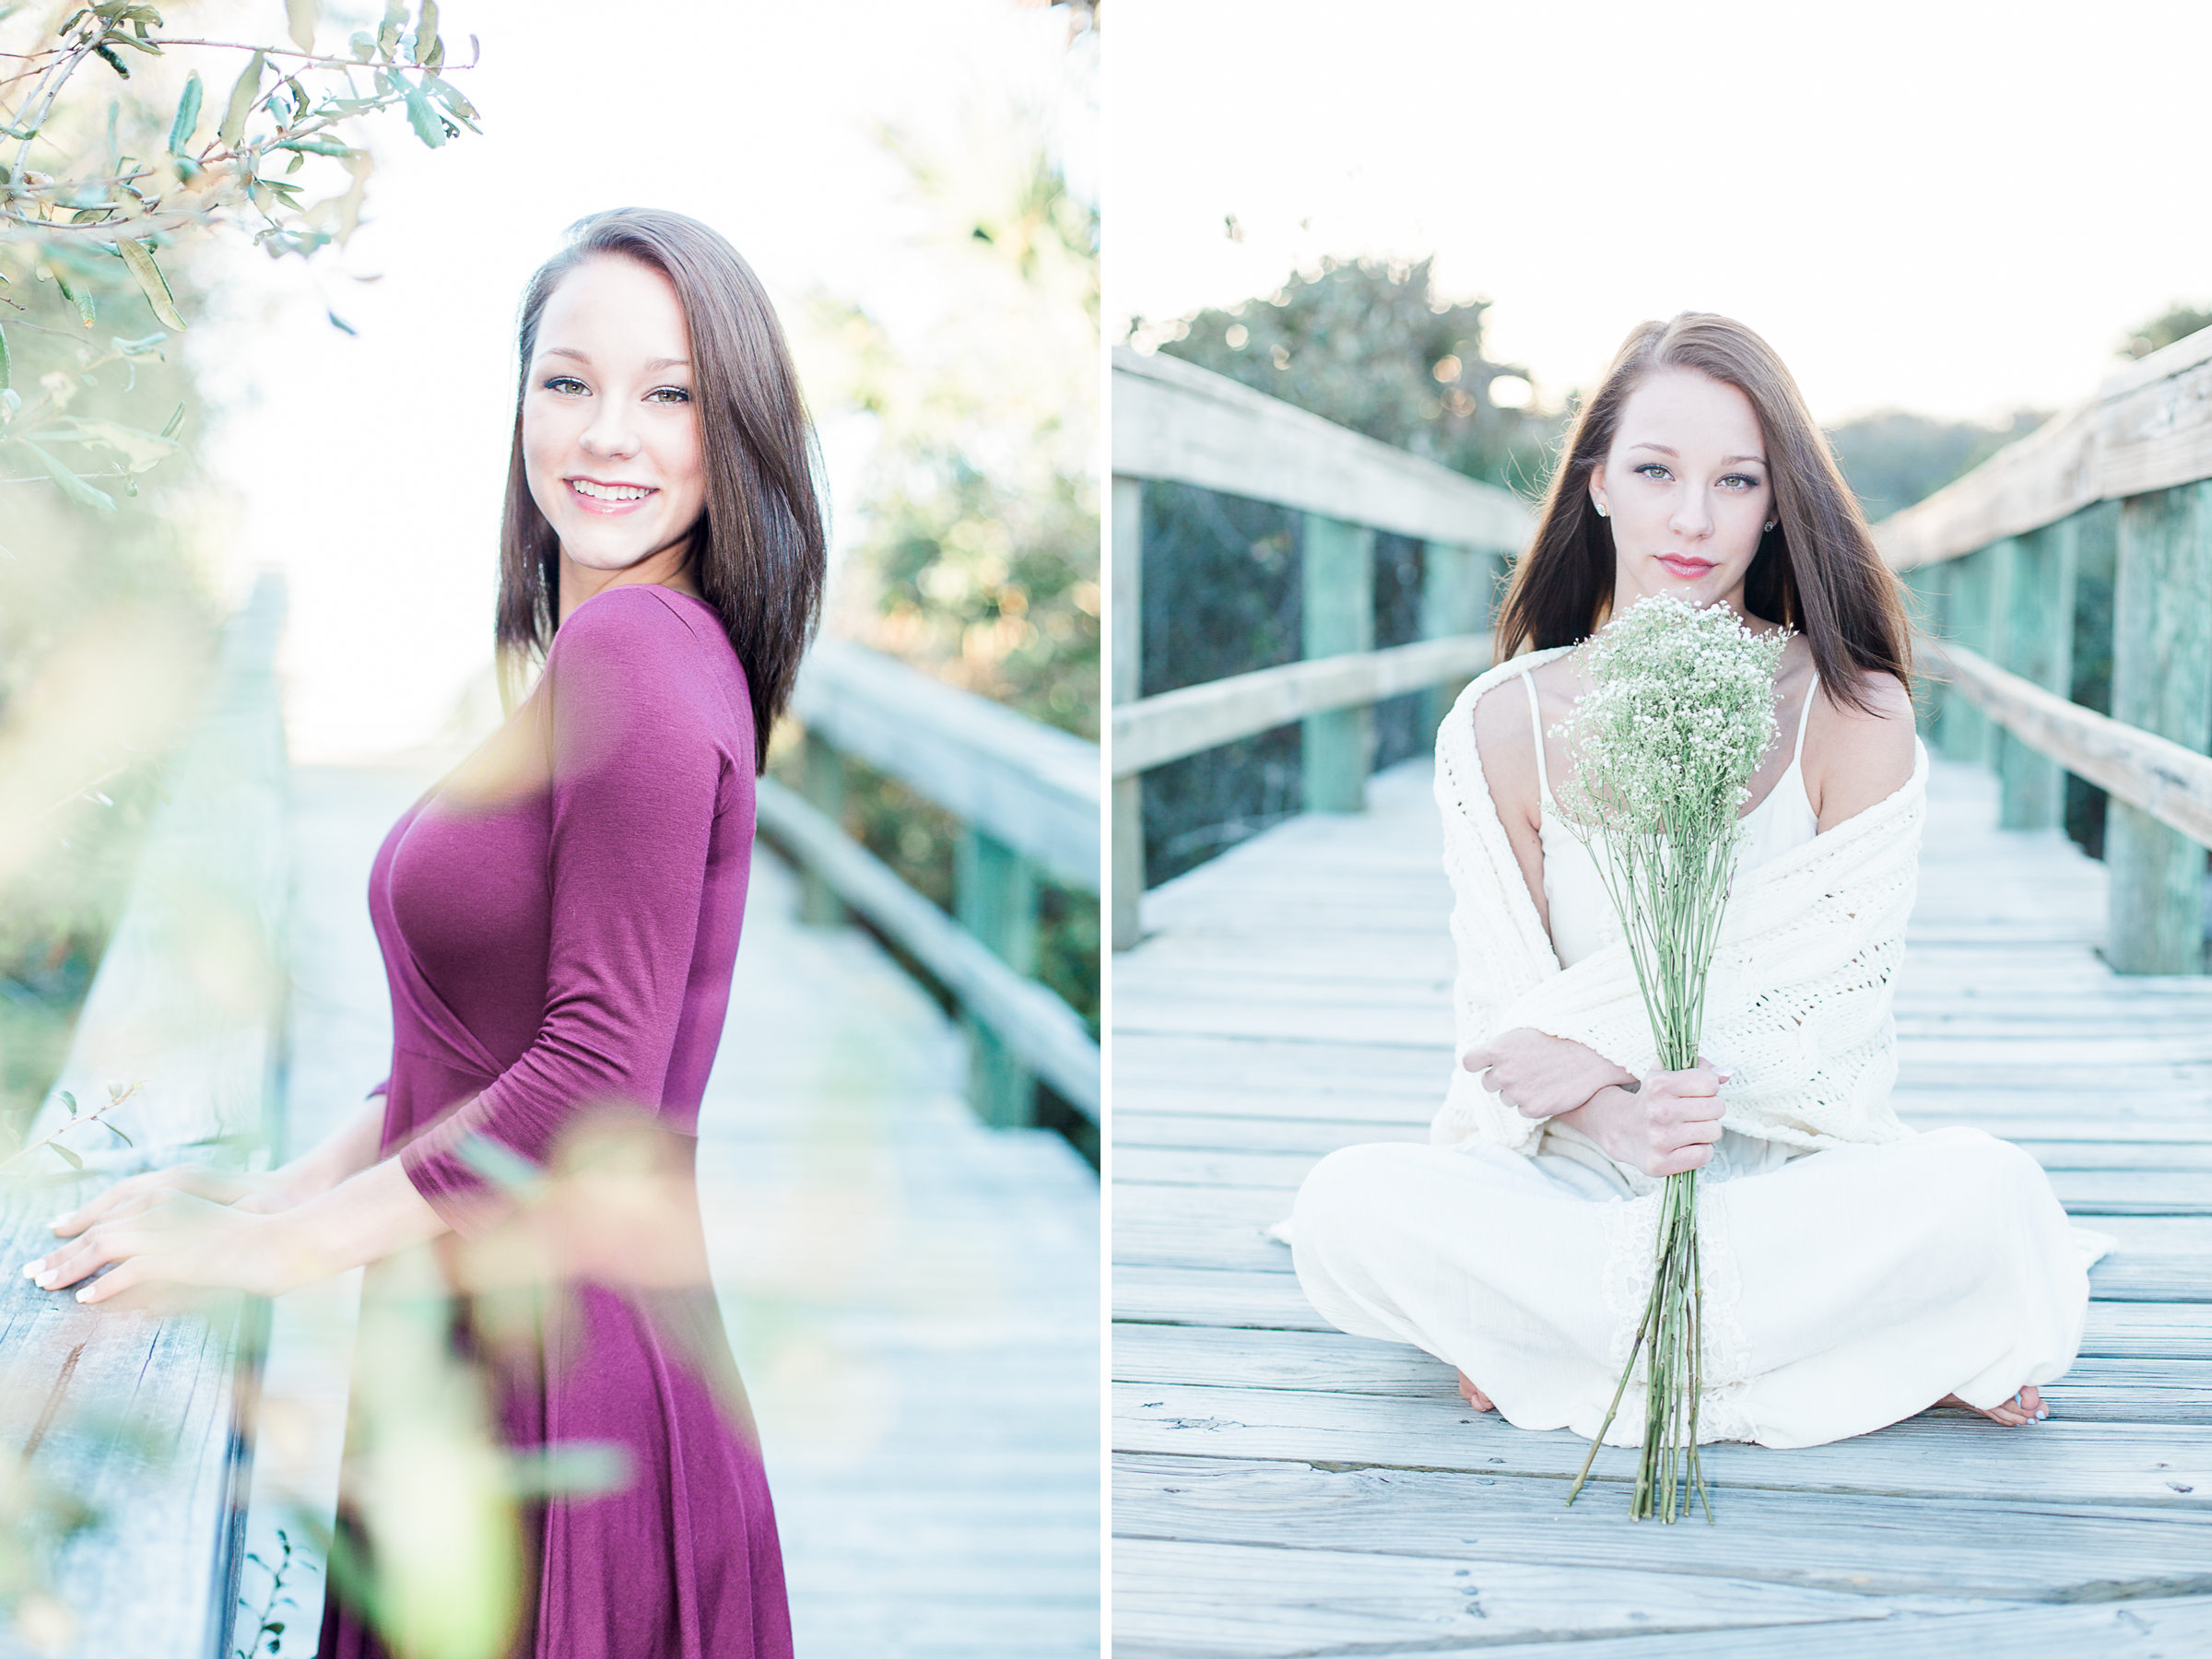 High school senior photos | Maris Kirs Photography | Jacksonville, St.Augustine and Ponte Vedra senior photographer